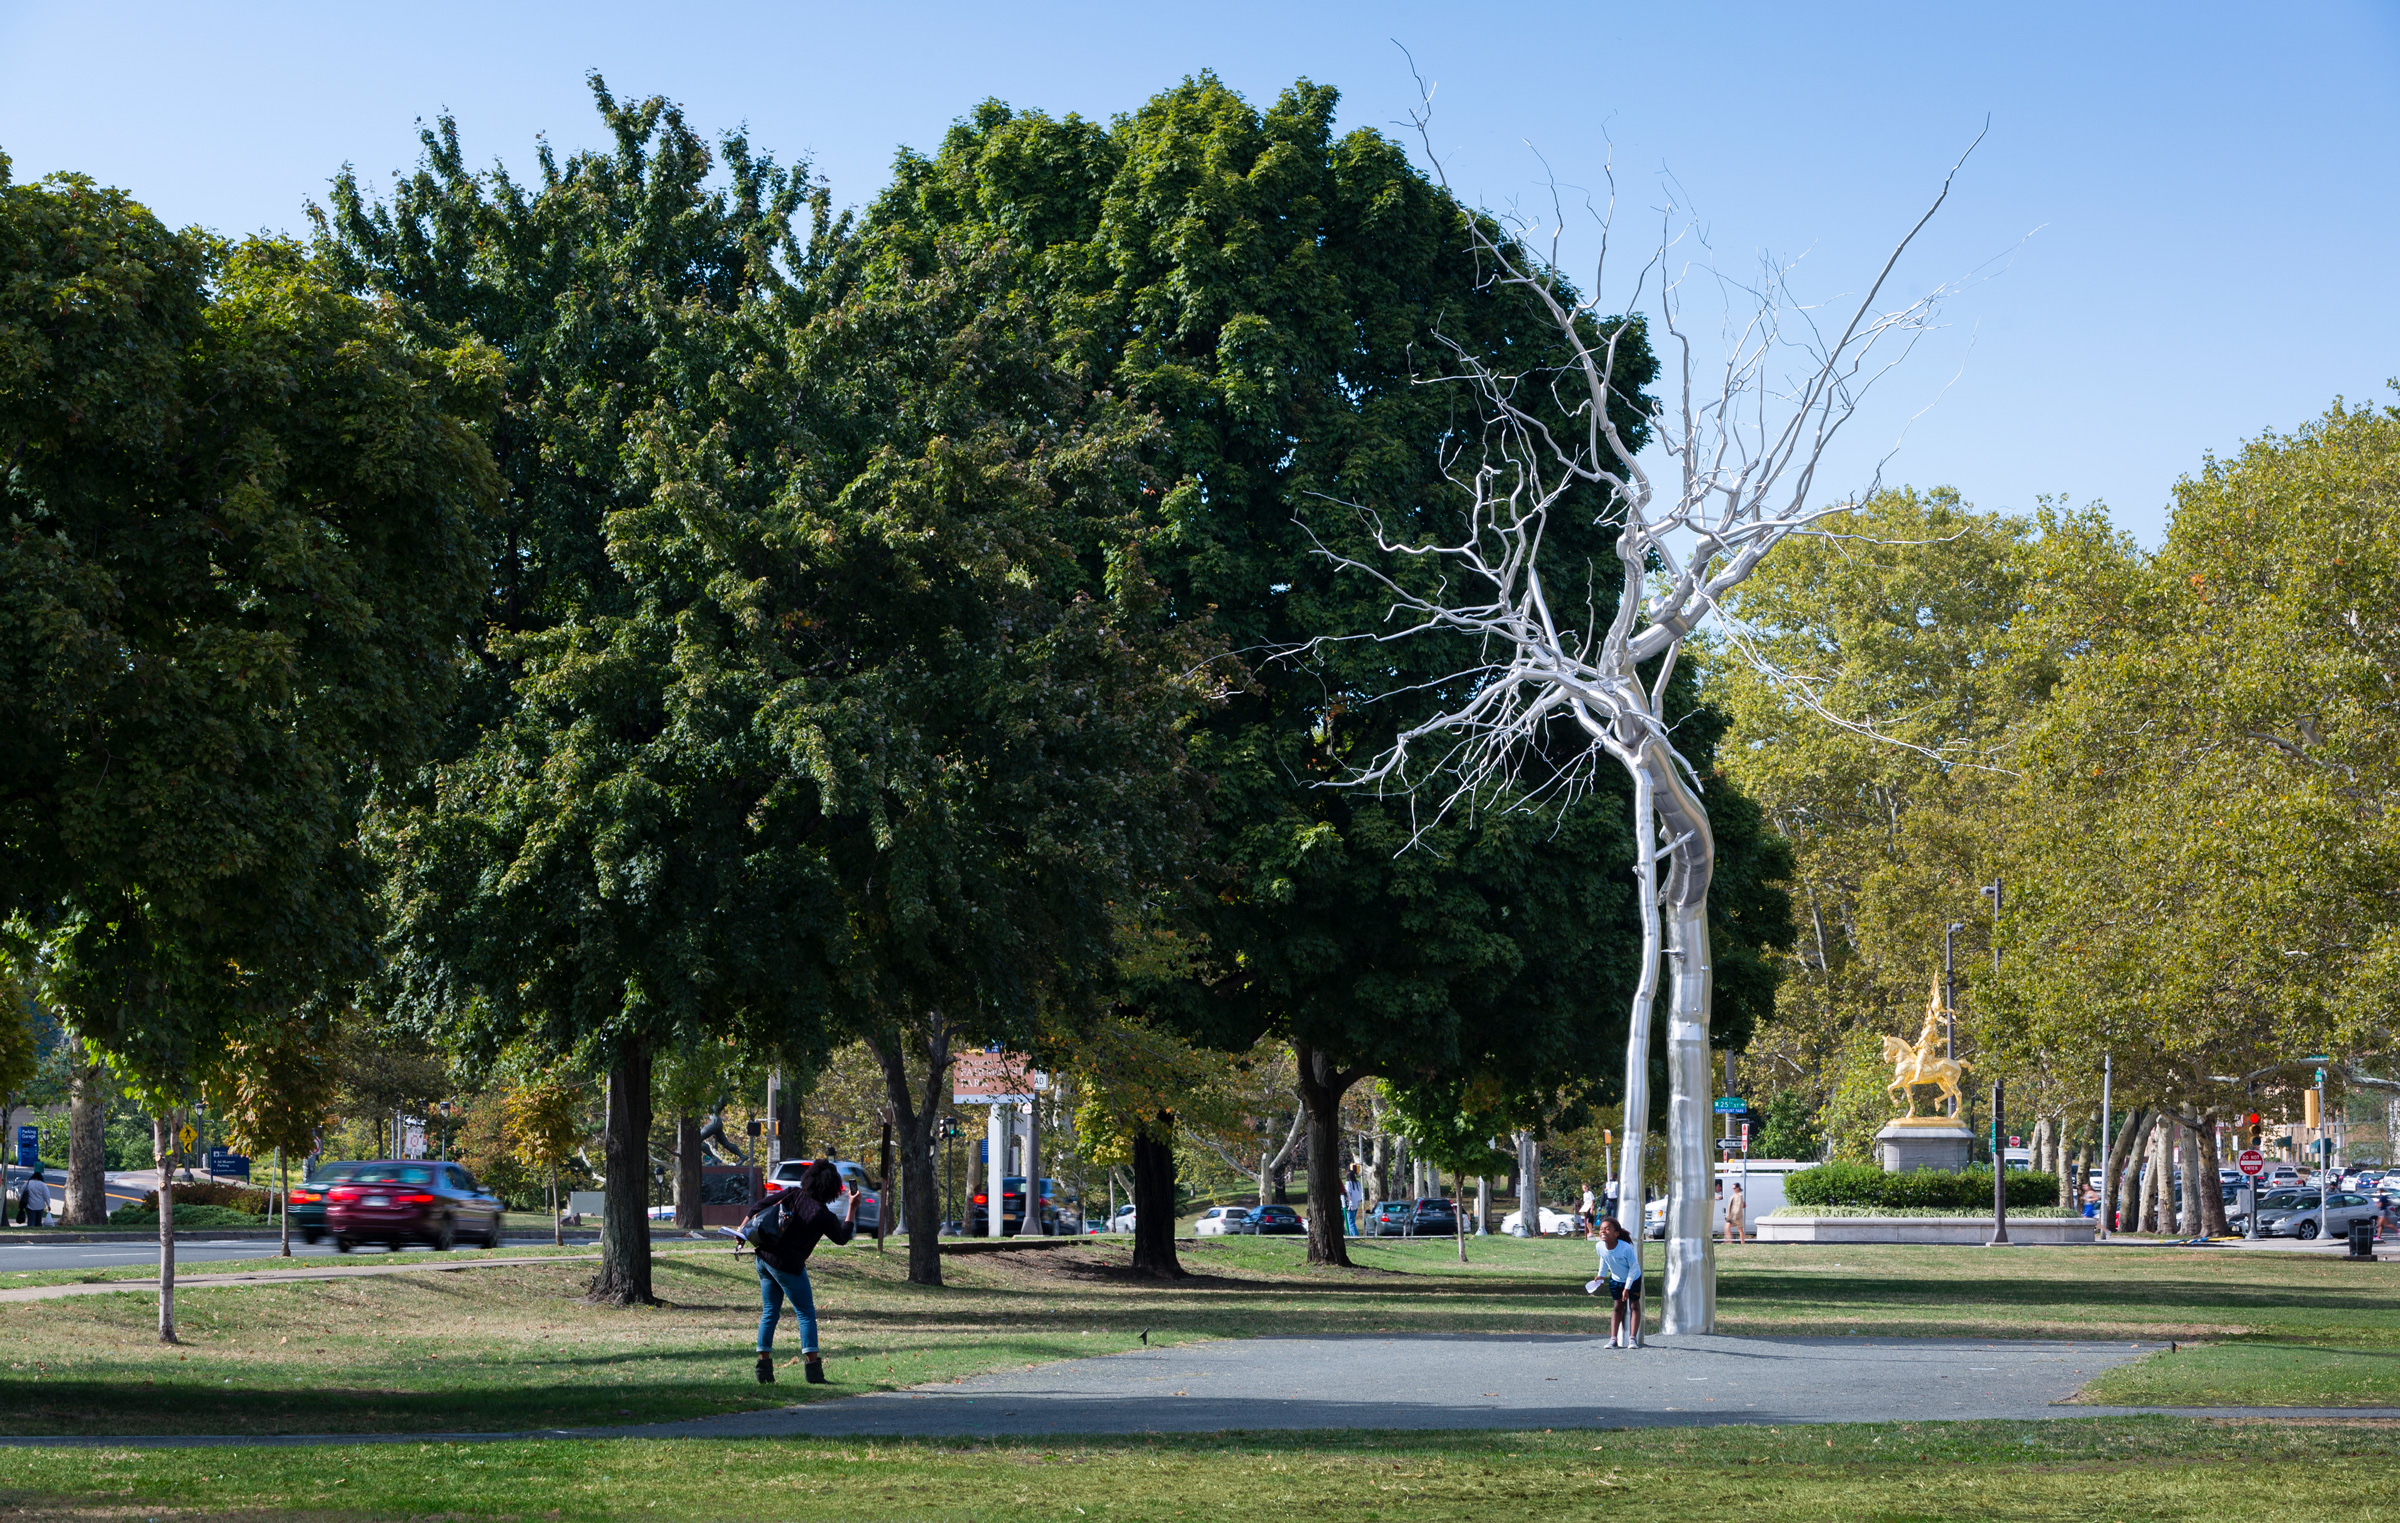 """A mother takes a photo of her smiling daughter, who is standing in front of artist Roxy Paine's stainless steel tall tree-like sculpture, """"Symbiosis""""."""